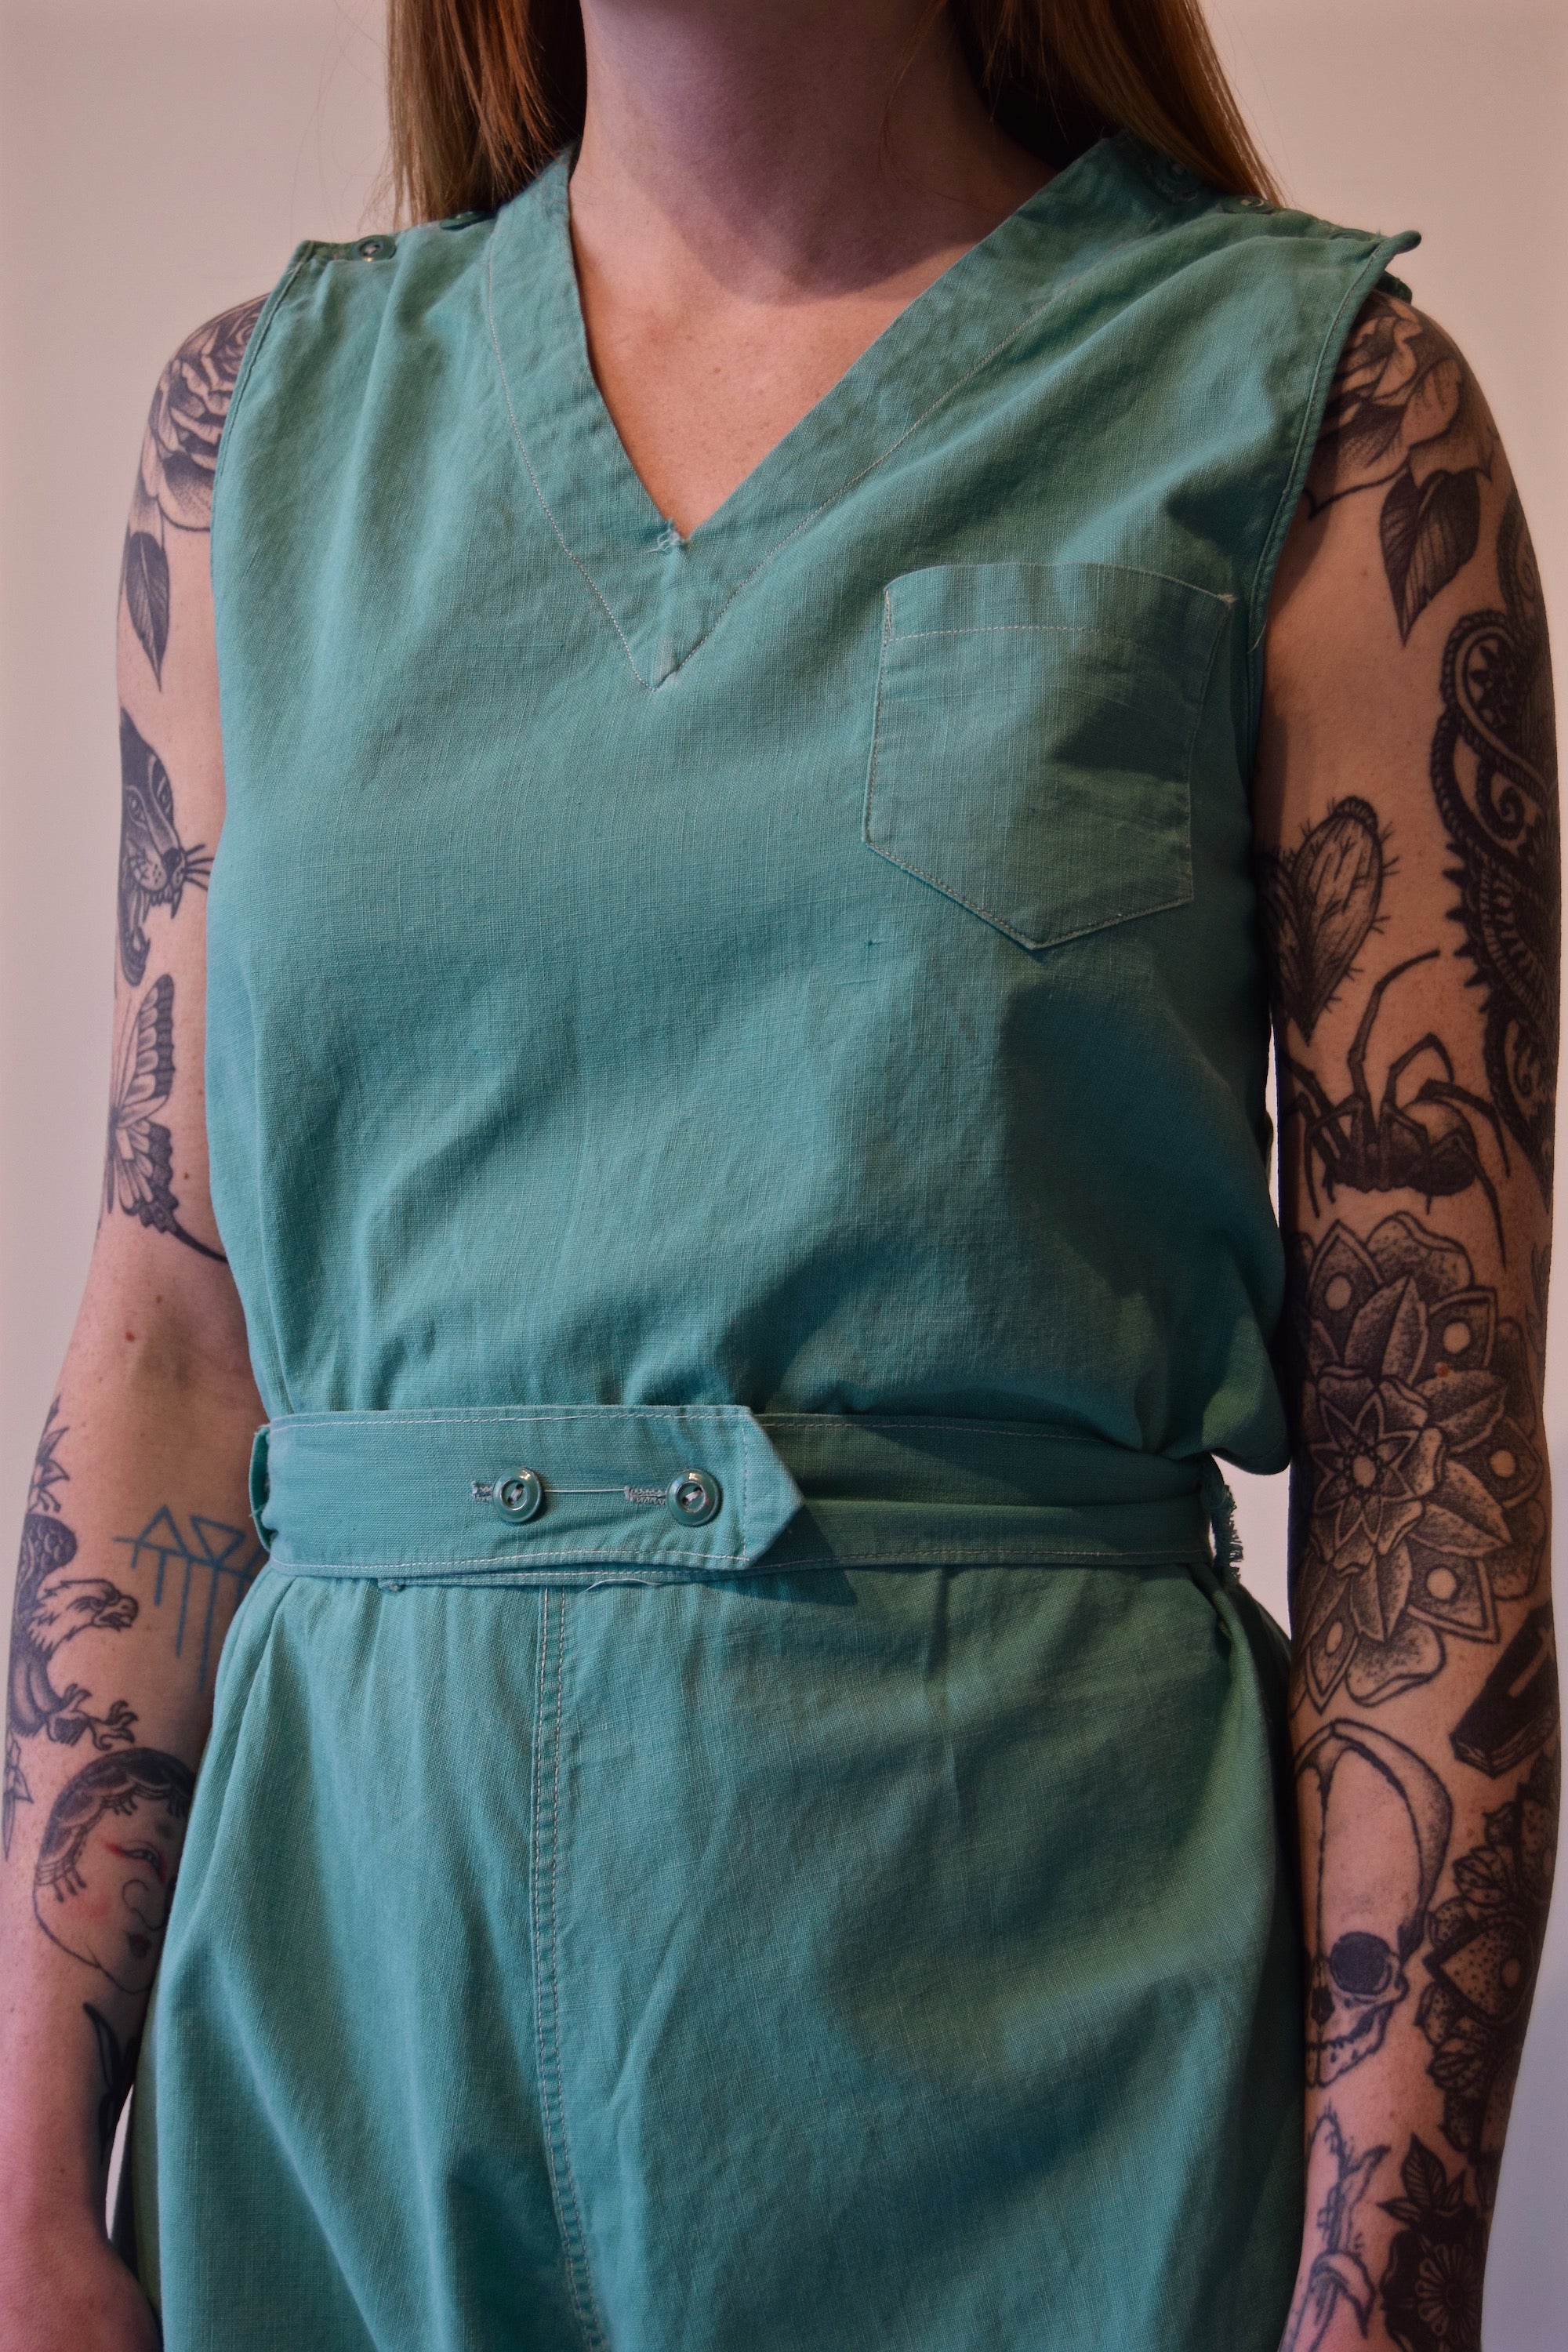 Vintage 1920's/1930's Seafoam Gym Outfit Romper with Embroidery FREE SHIPPING TO THE U.S.